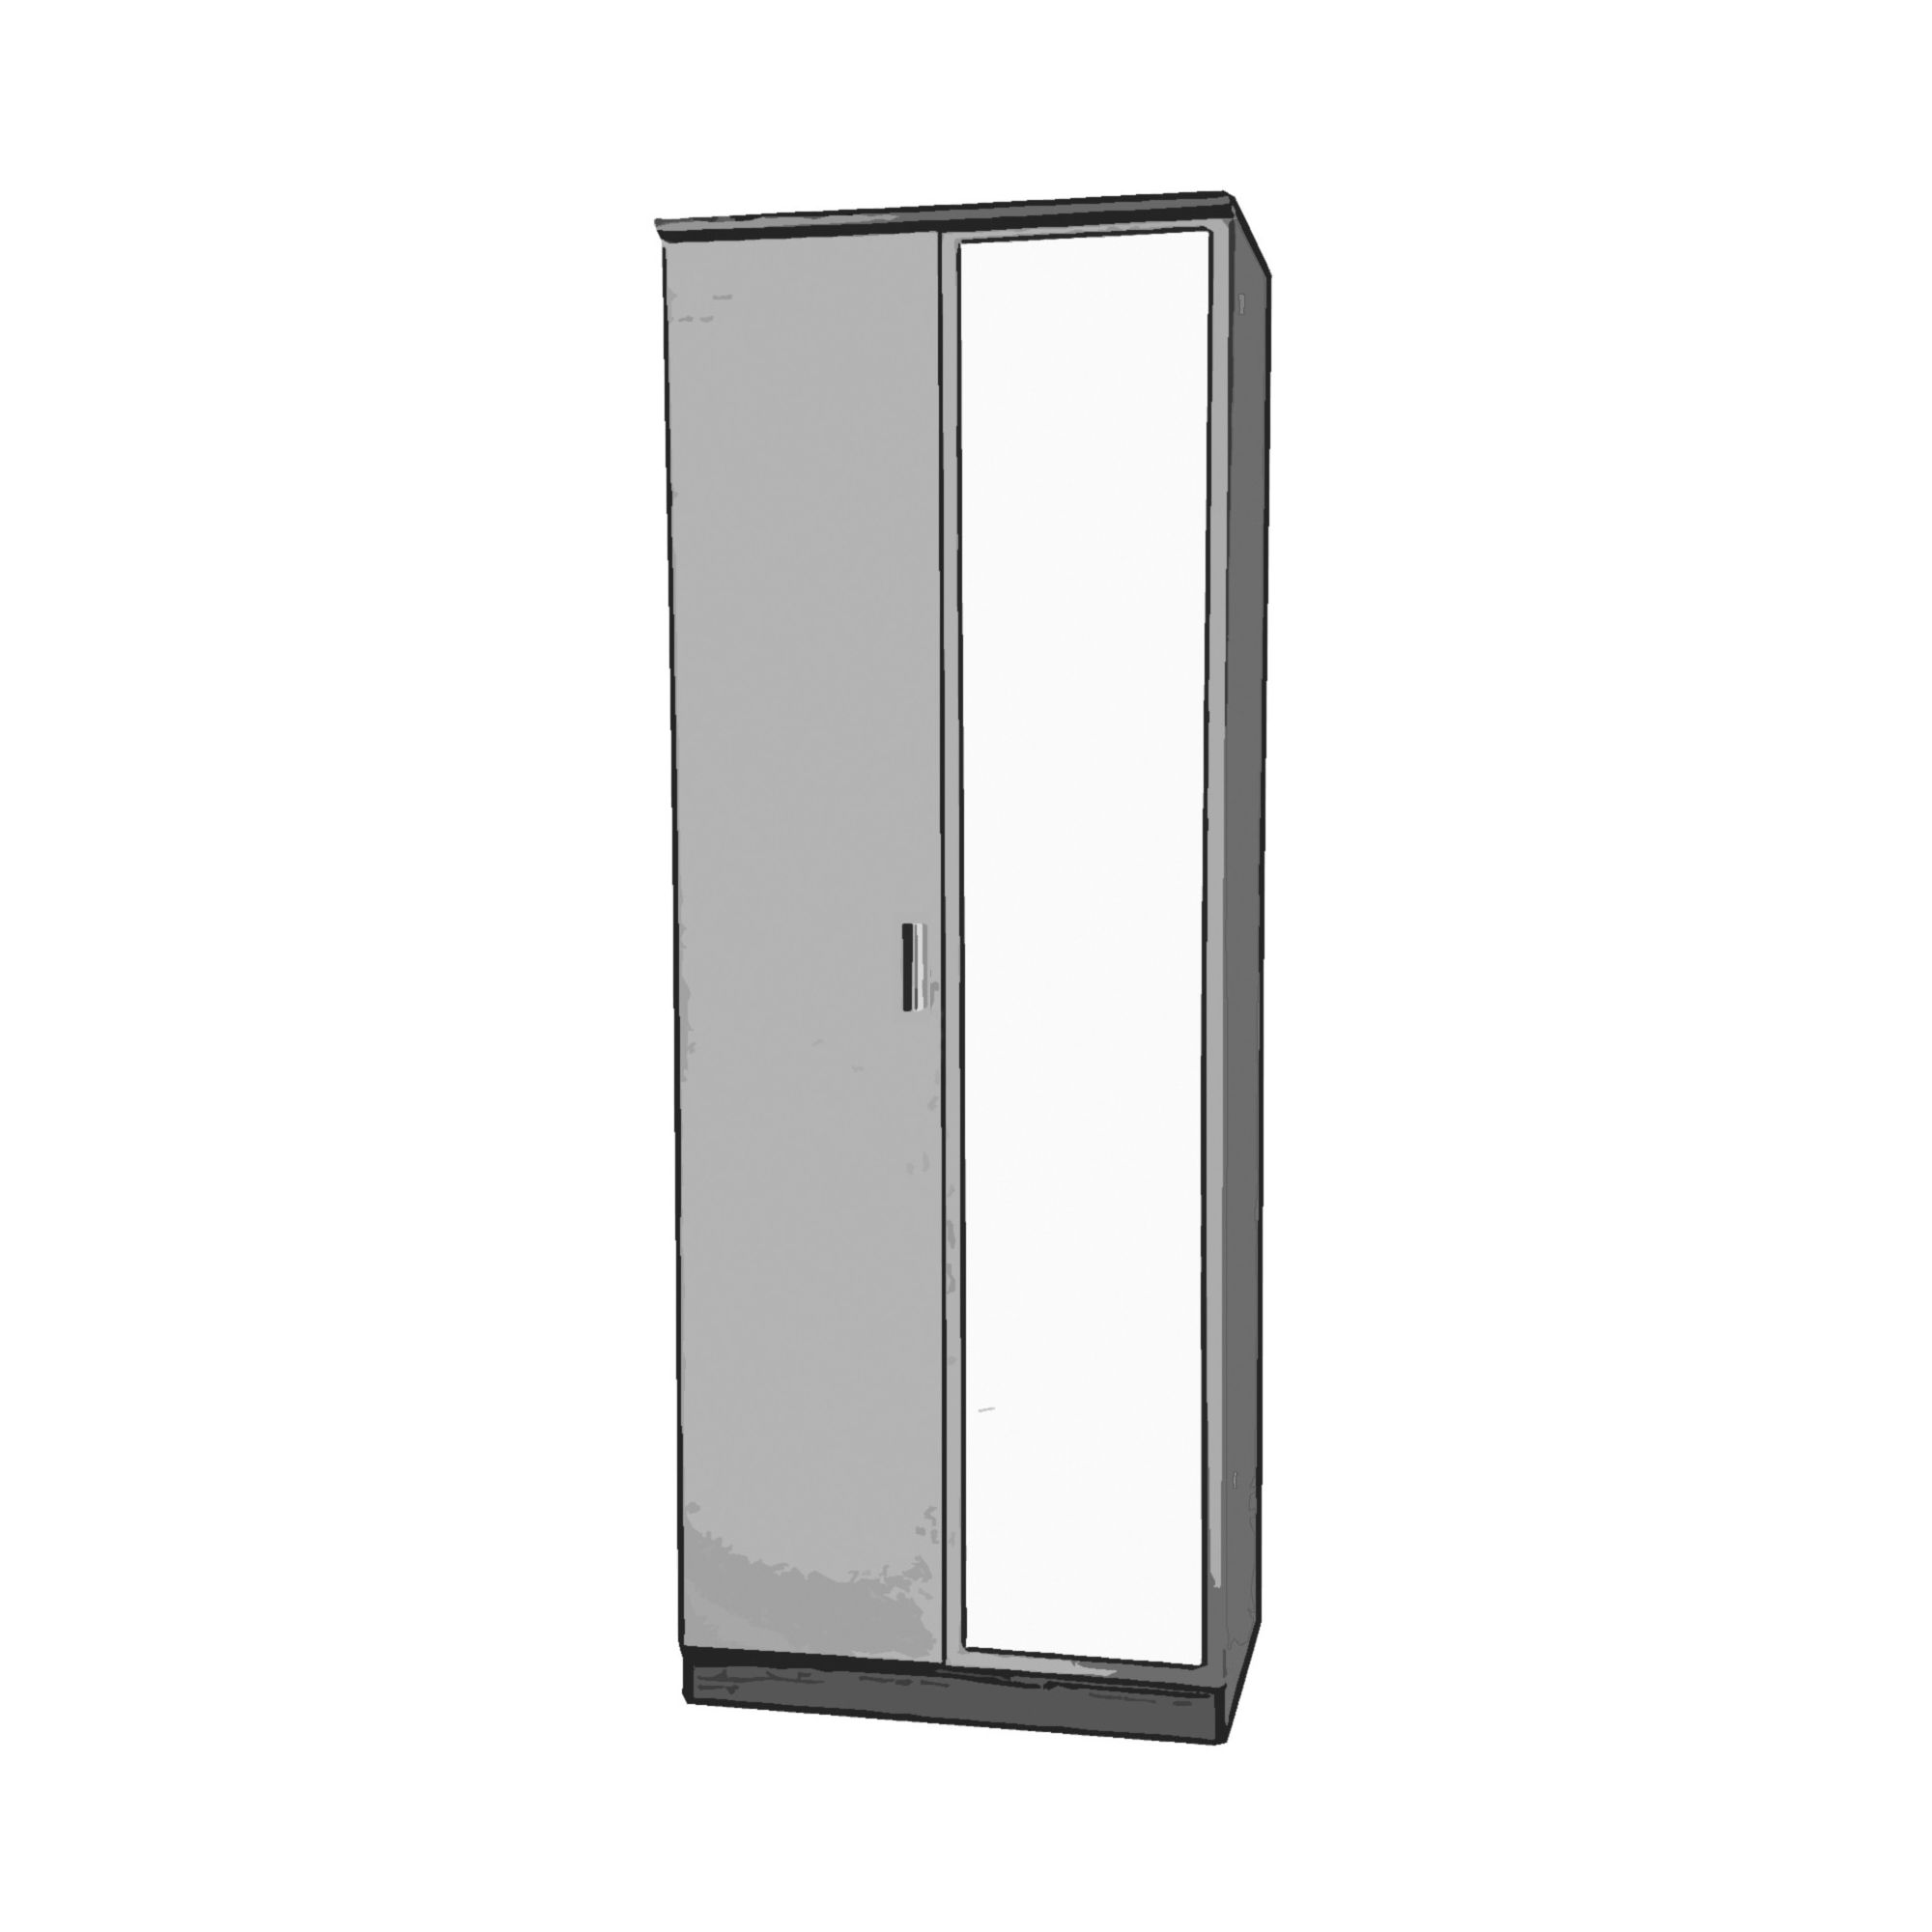 Welcome Furniture Mayfair Tall Wardrobe with Mirror - Aubergine - Black - Cream at Tesco Direct